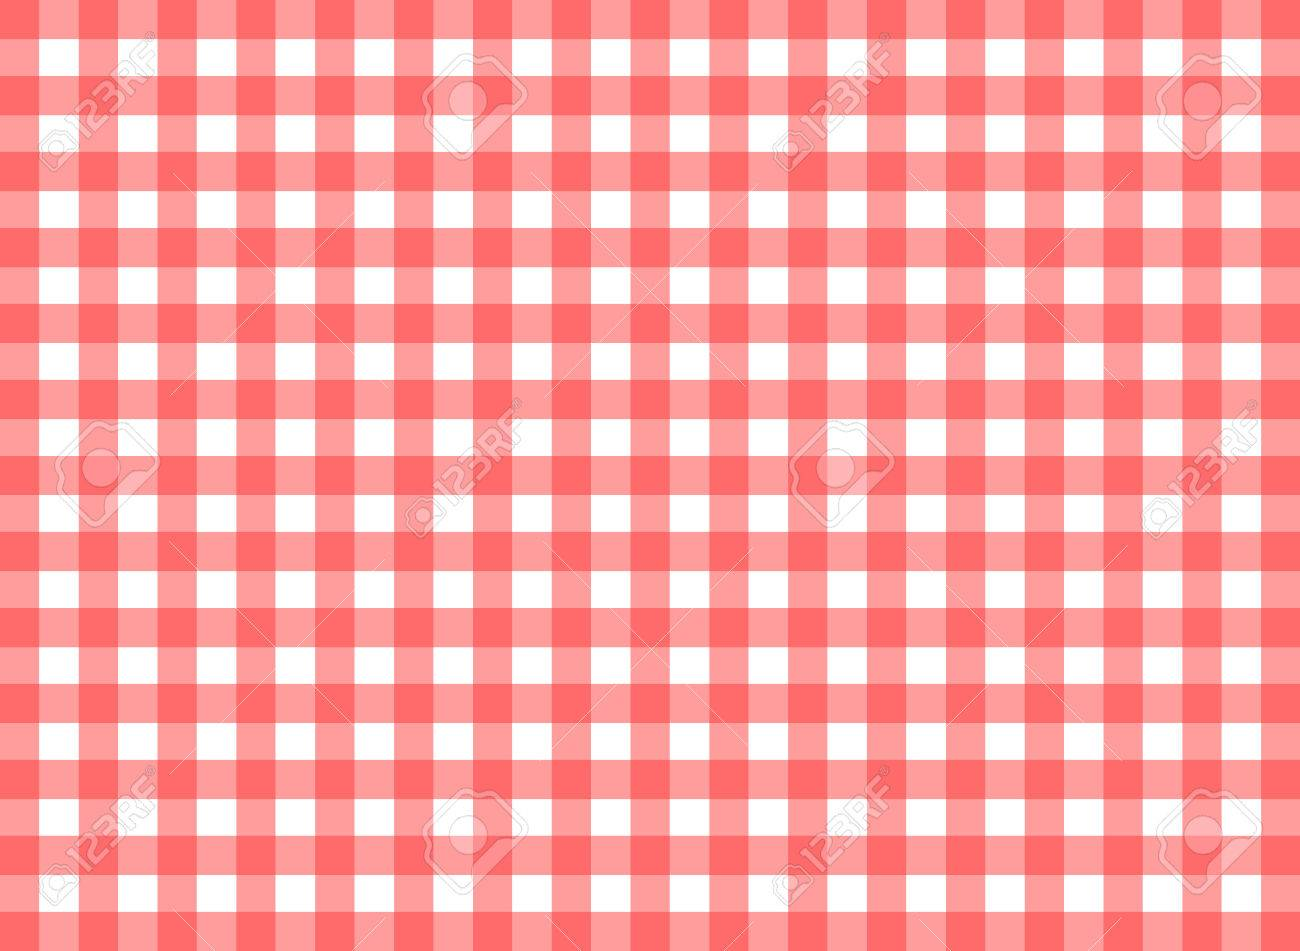 Easy Tilable Red Gingham Repeat Pattern Print Seamless Background Wallpaper With Fabric Texture Visible